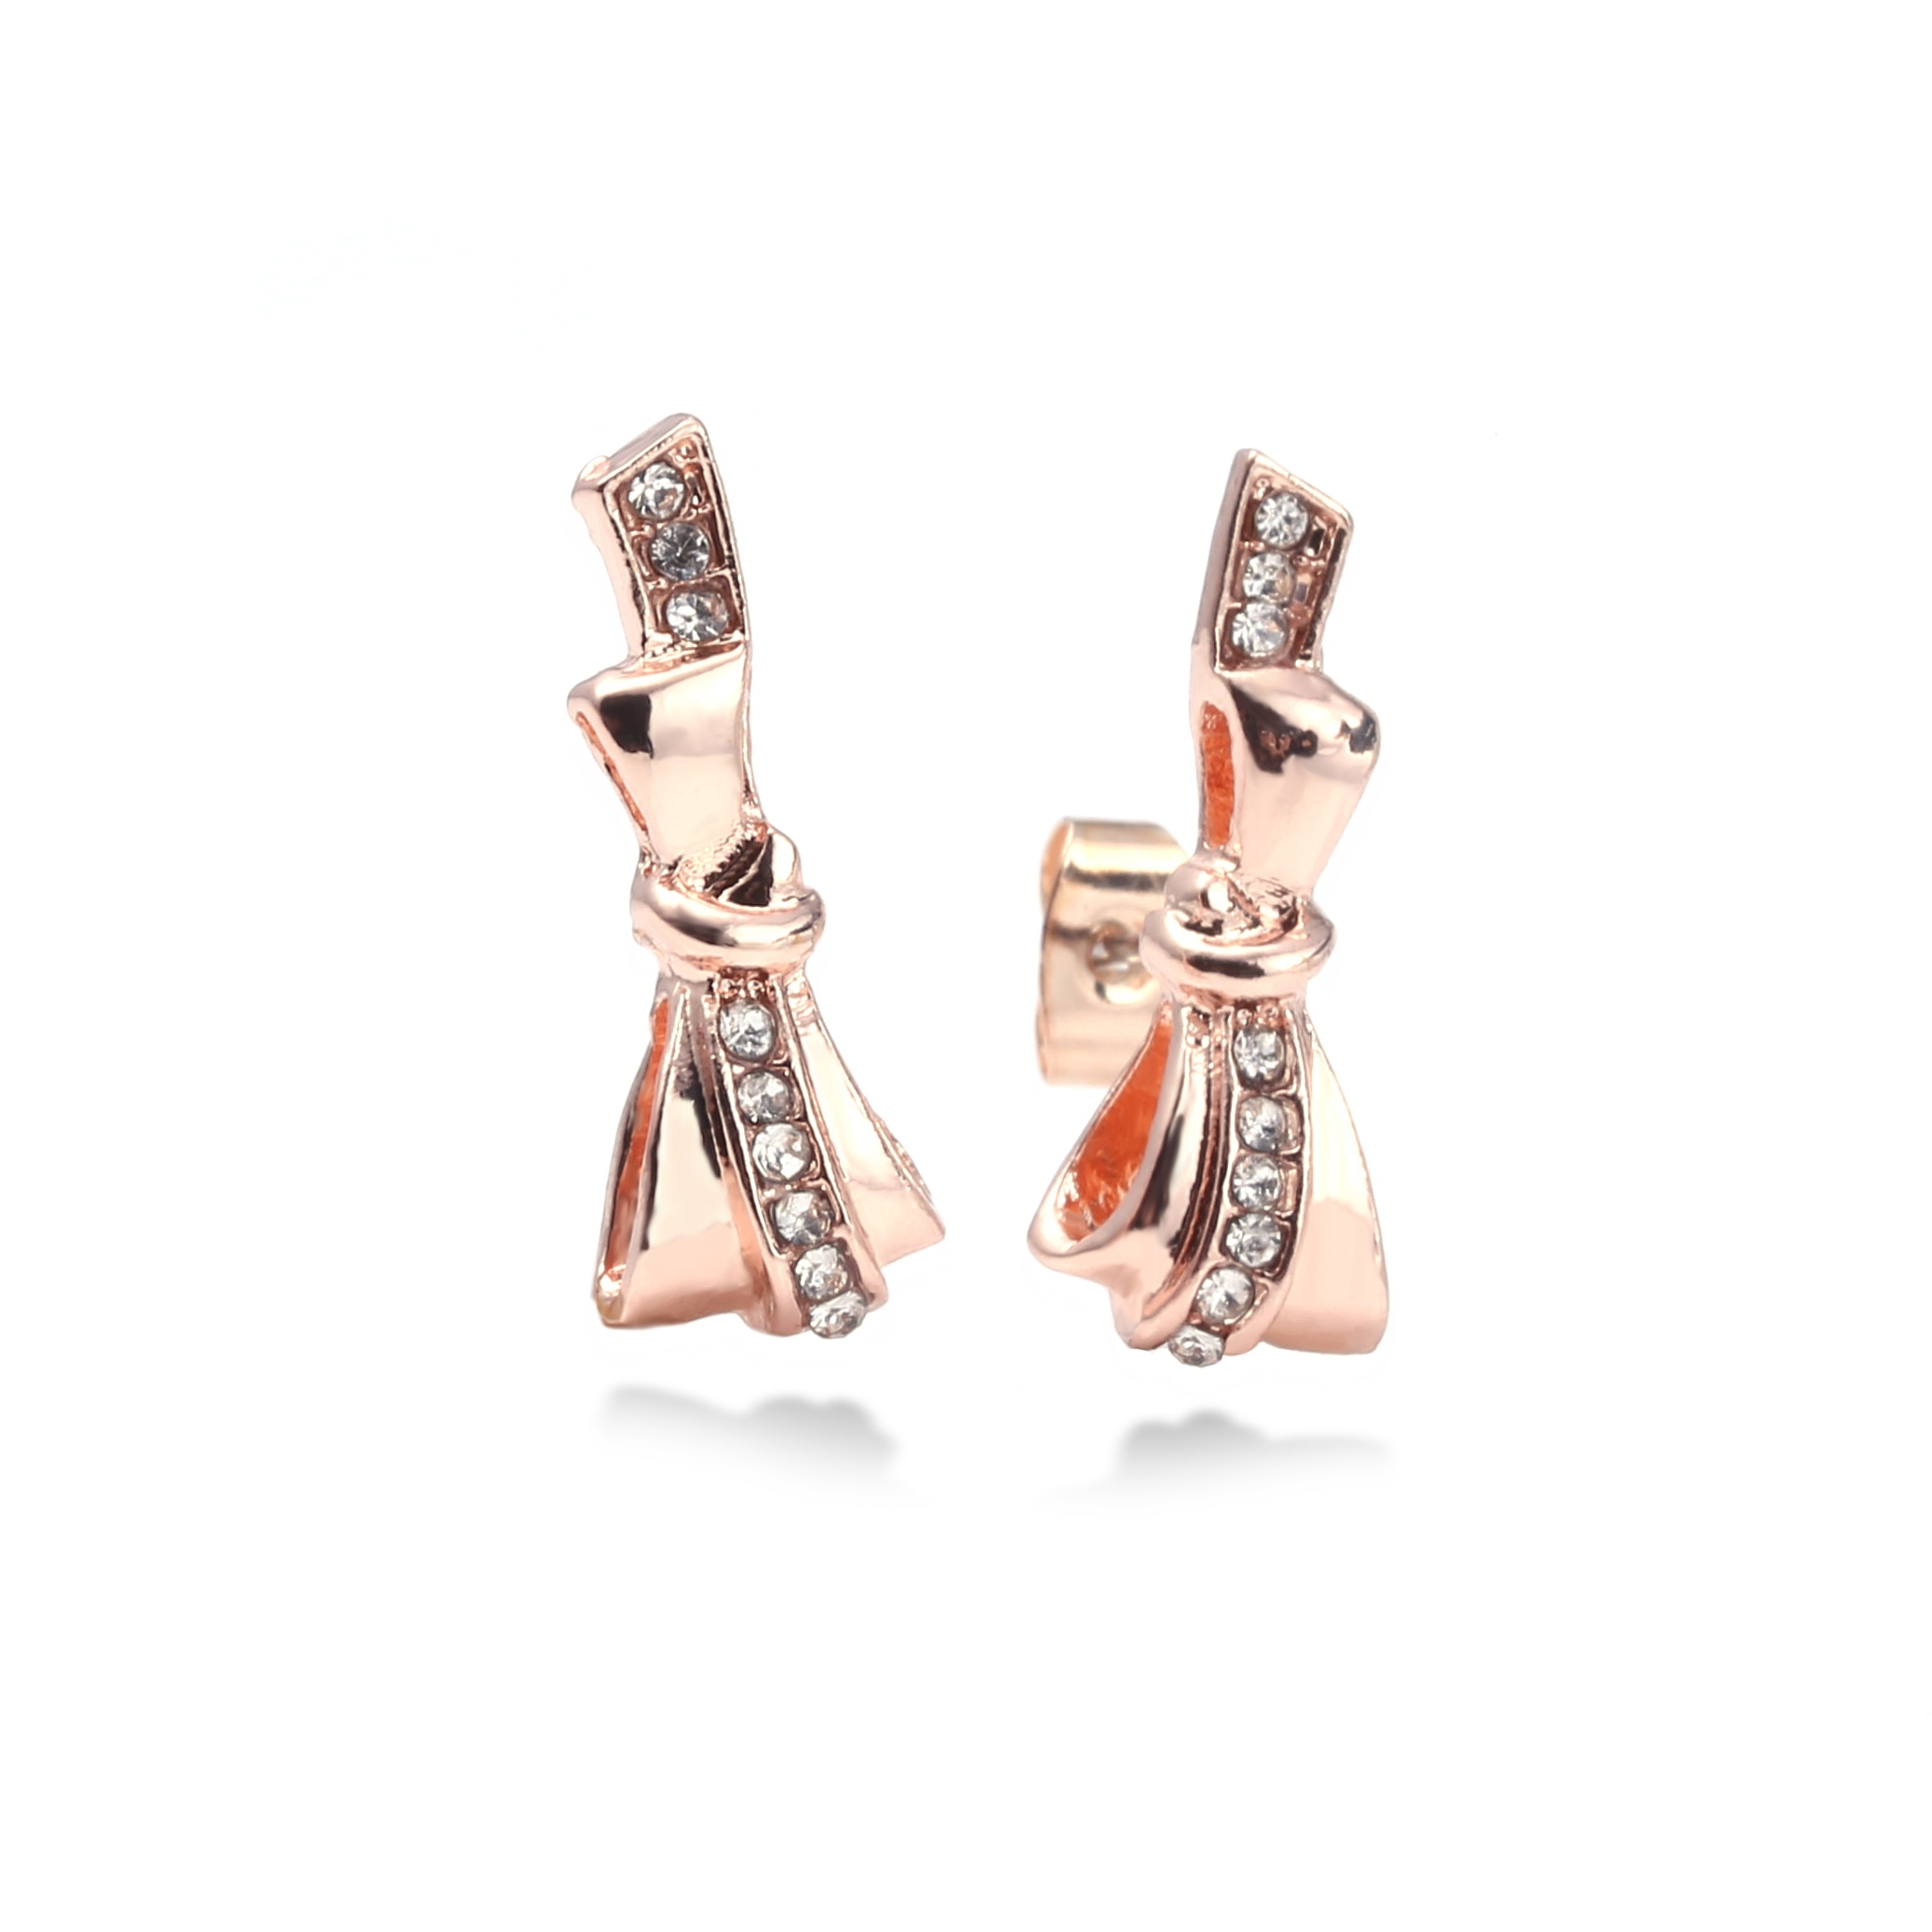 Rose Gold Fine Stud Earrings For Ladies Women Crown Love Round Earrings Jewellery Birthday Gift Anti Allergy  - buy with discount